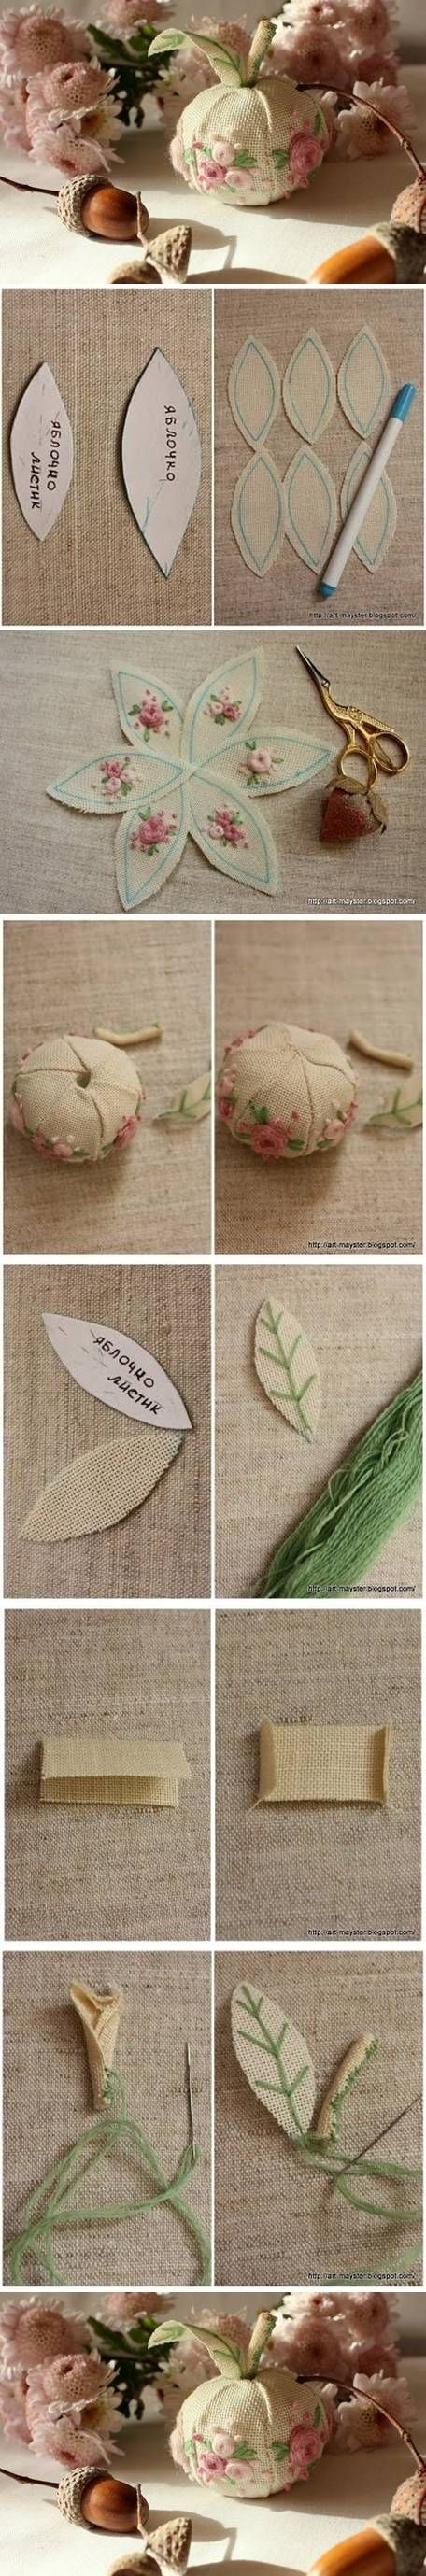 DIY Fabric Apple Decor DIY Fabric Apple Decor by catrulz